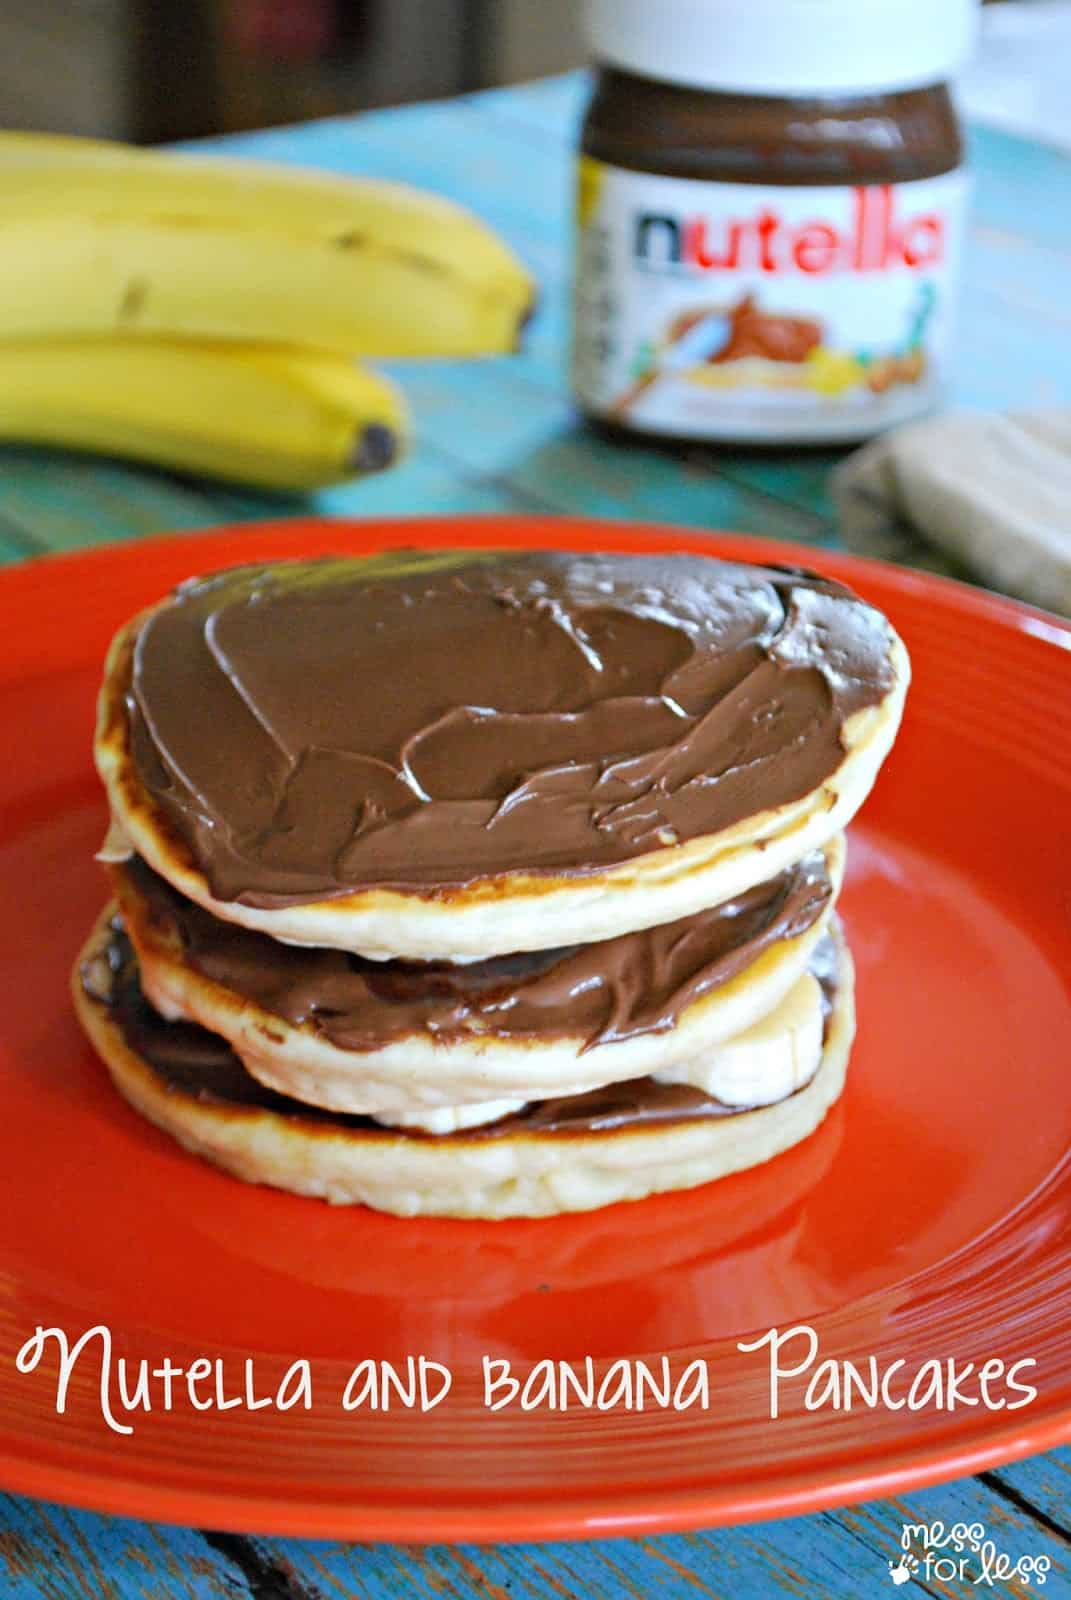 Homemade Pancakes with Nutella and Bananas - Yummy breakfast treat! #sponsored #spreadthehappy